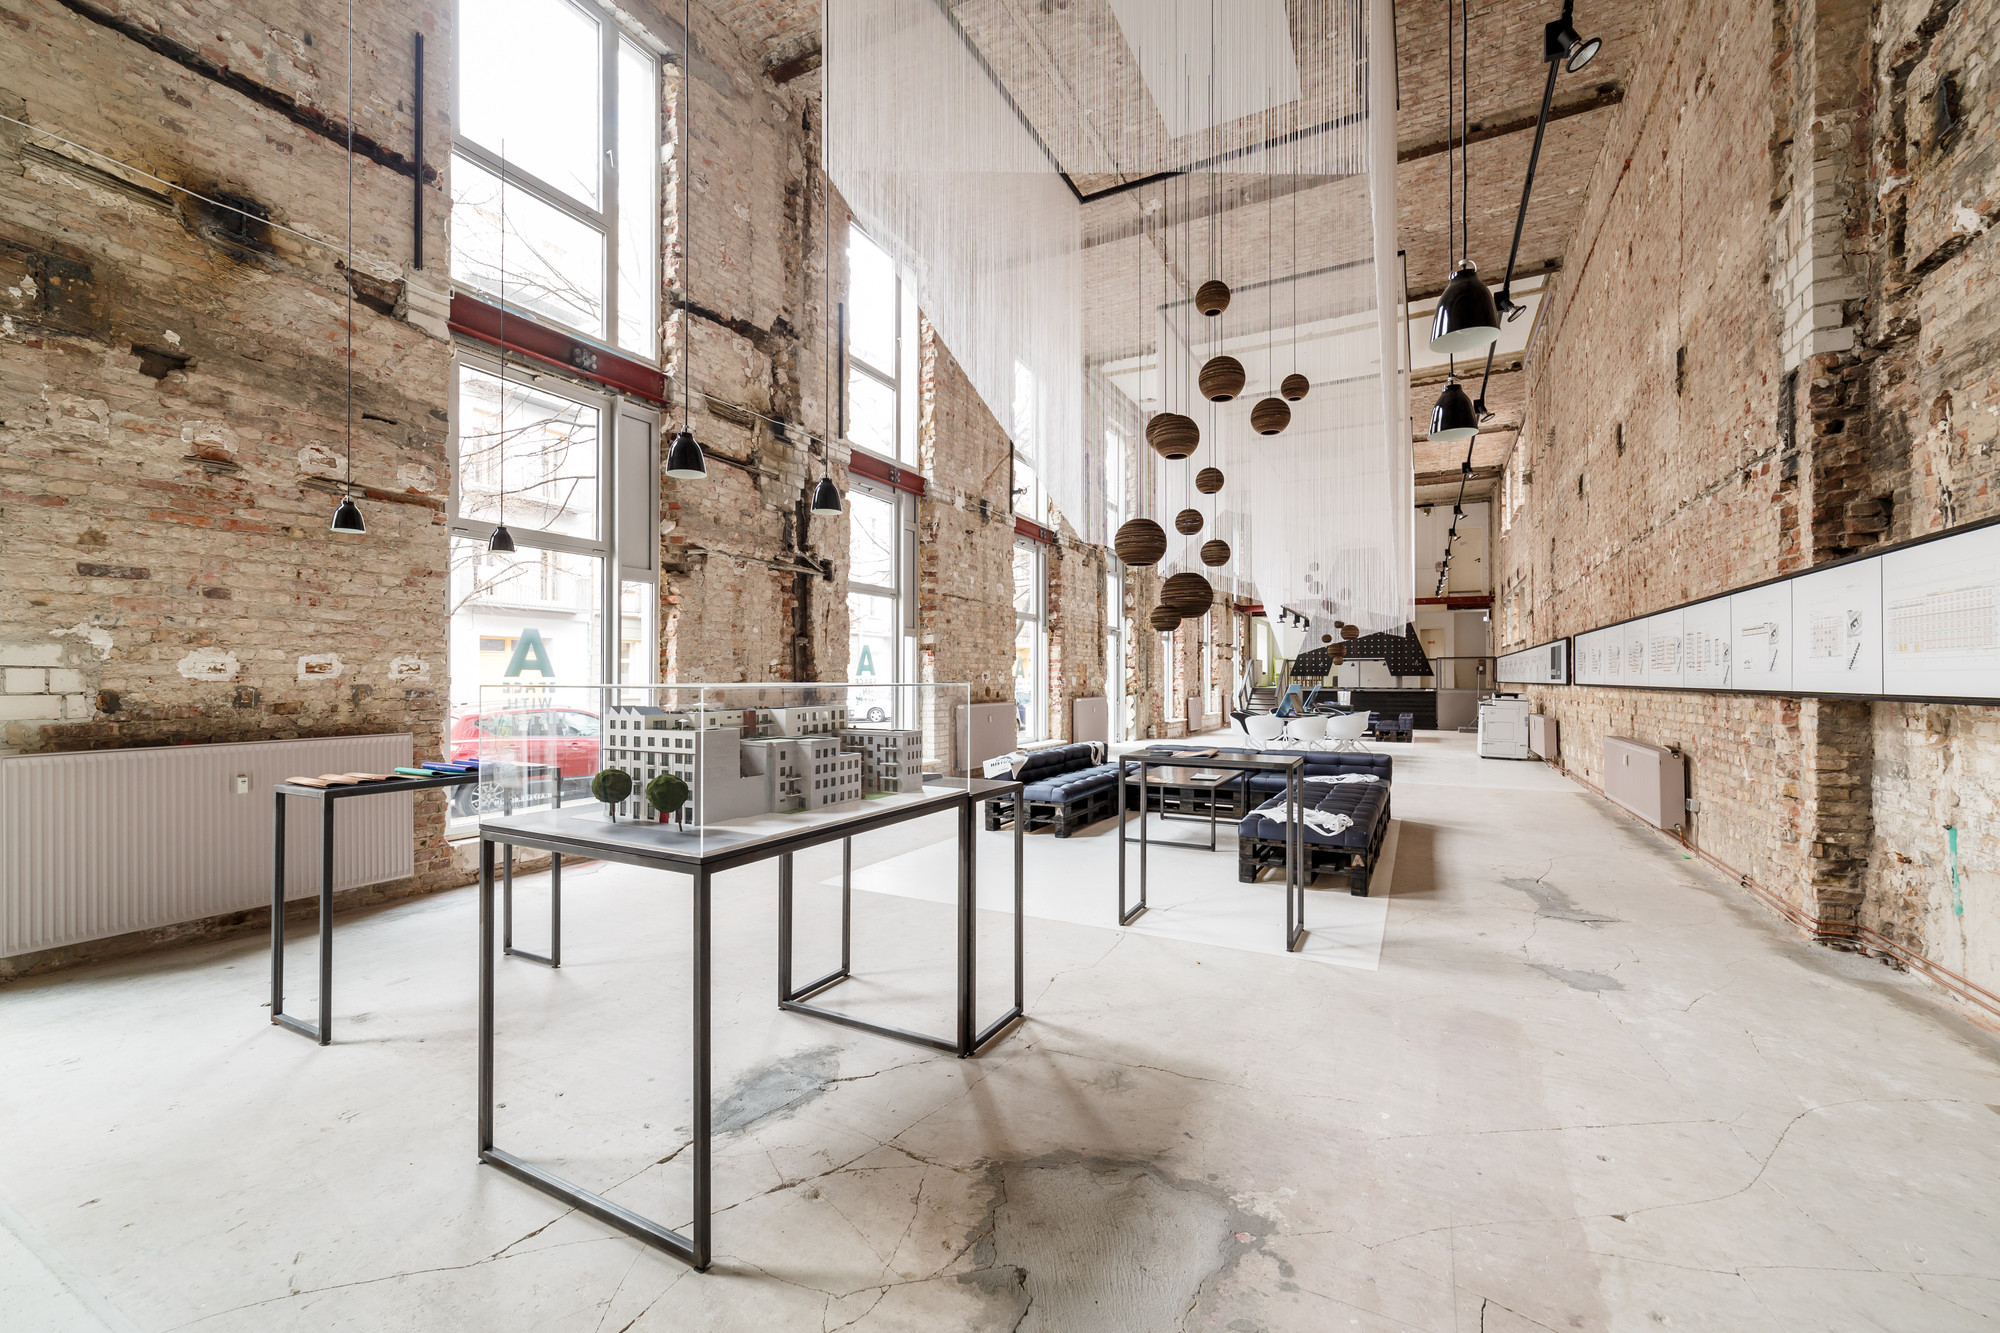 A space: Lofts in Berlin Mitte / plajer & franz studio | ArchDaily